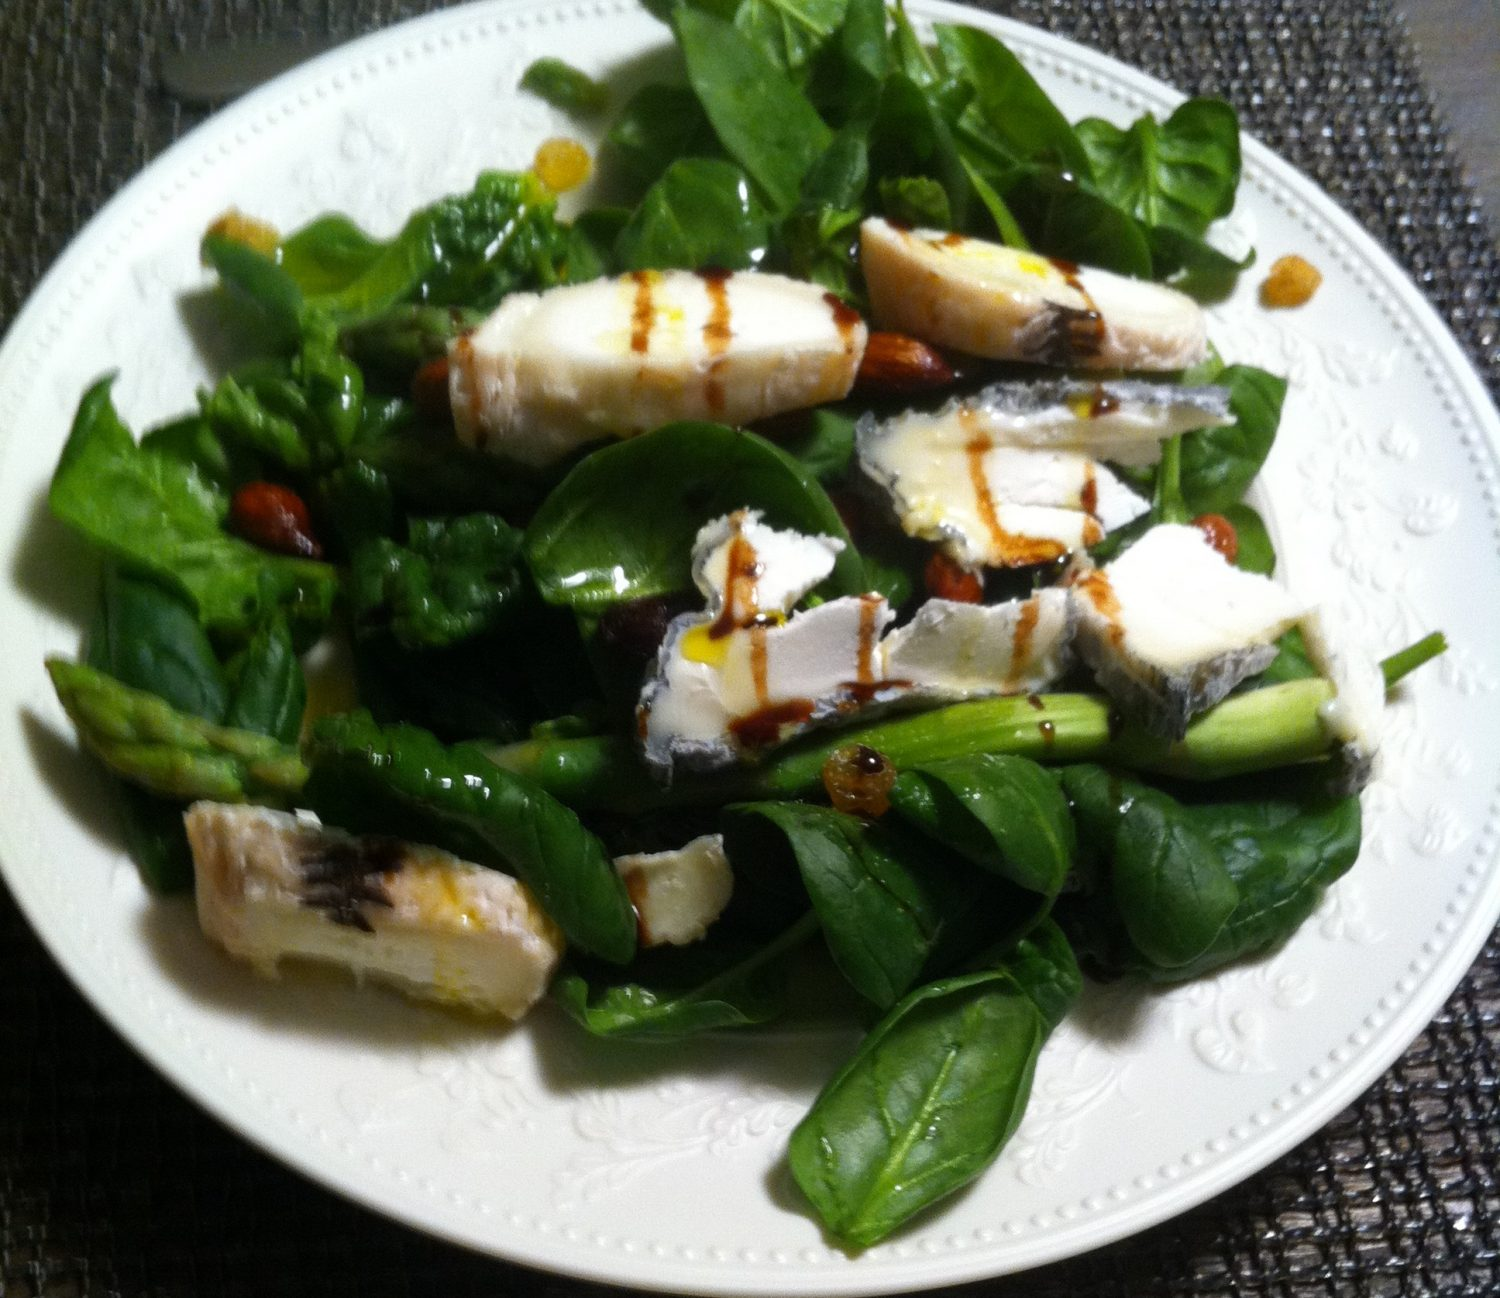 Goat cheese& baby spinach